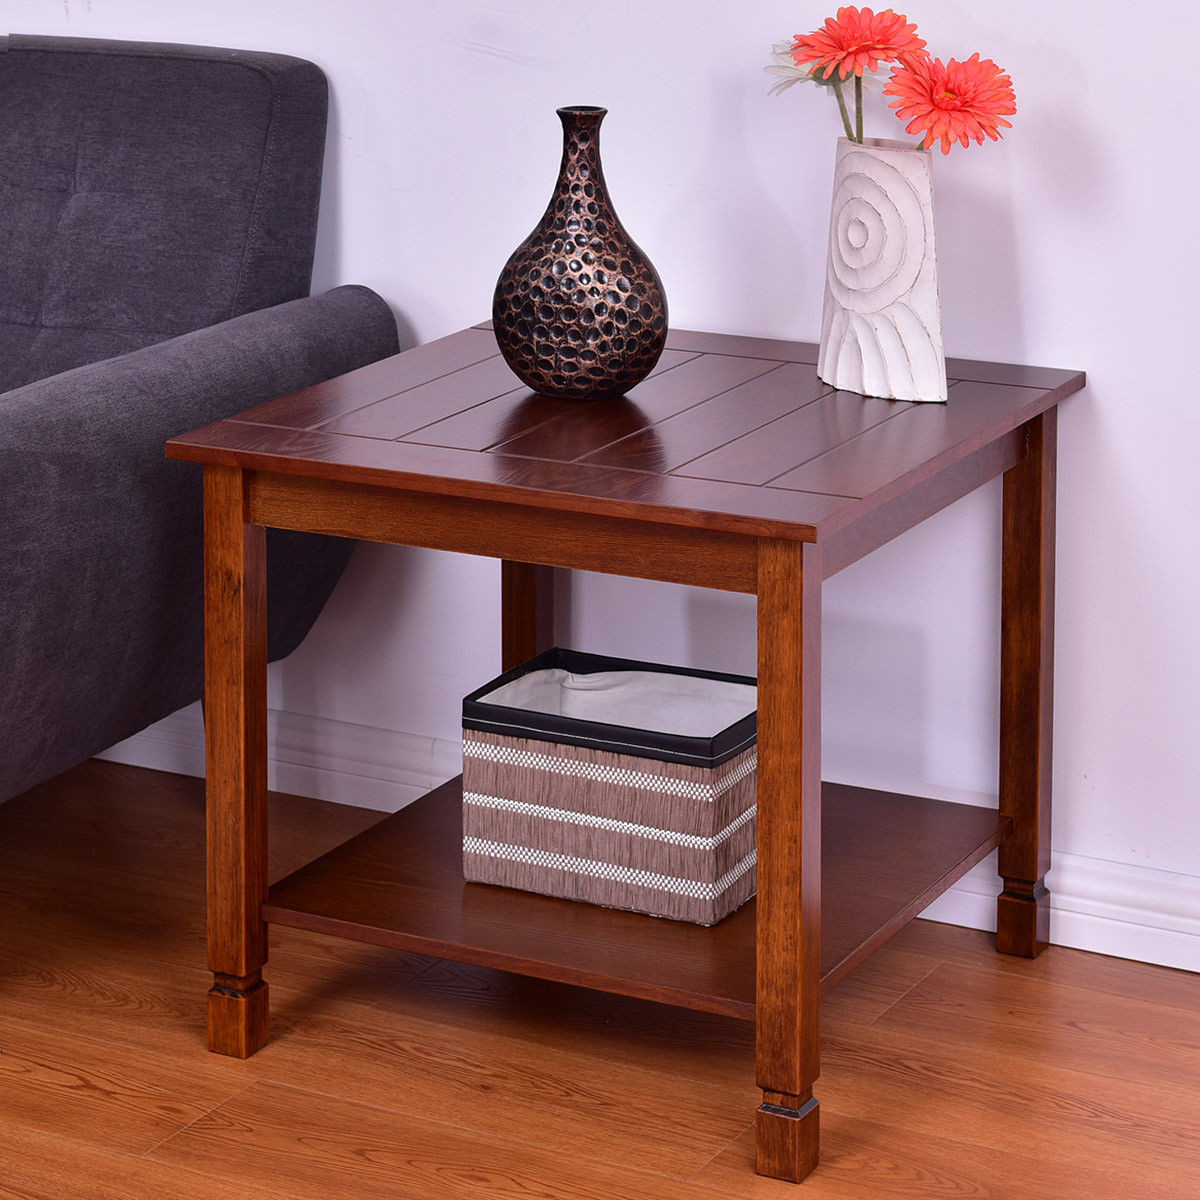 Table In Living Room  Giantex Wood Side Table Living Room End Table Night Stand